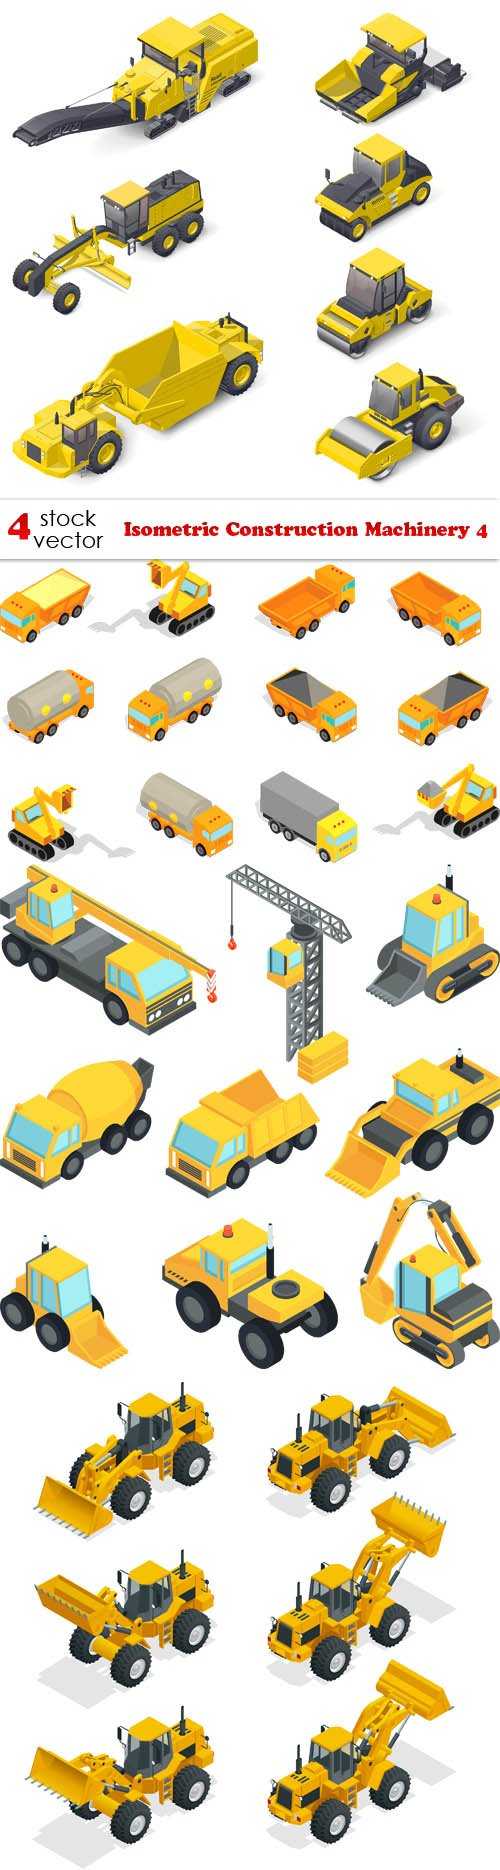 Vectors - Isometric Construction Machinery 4